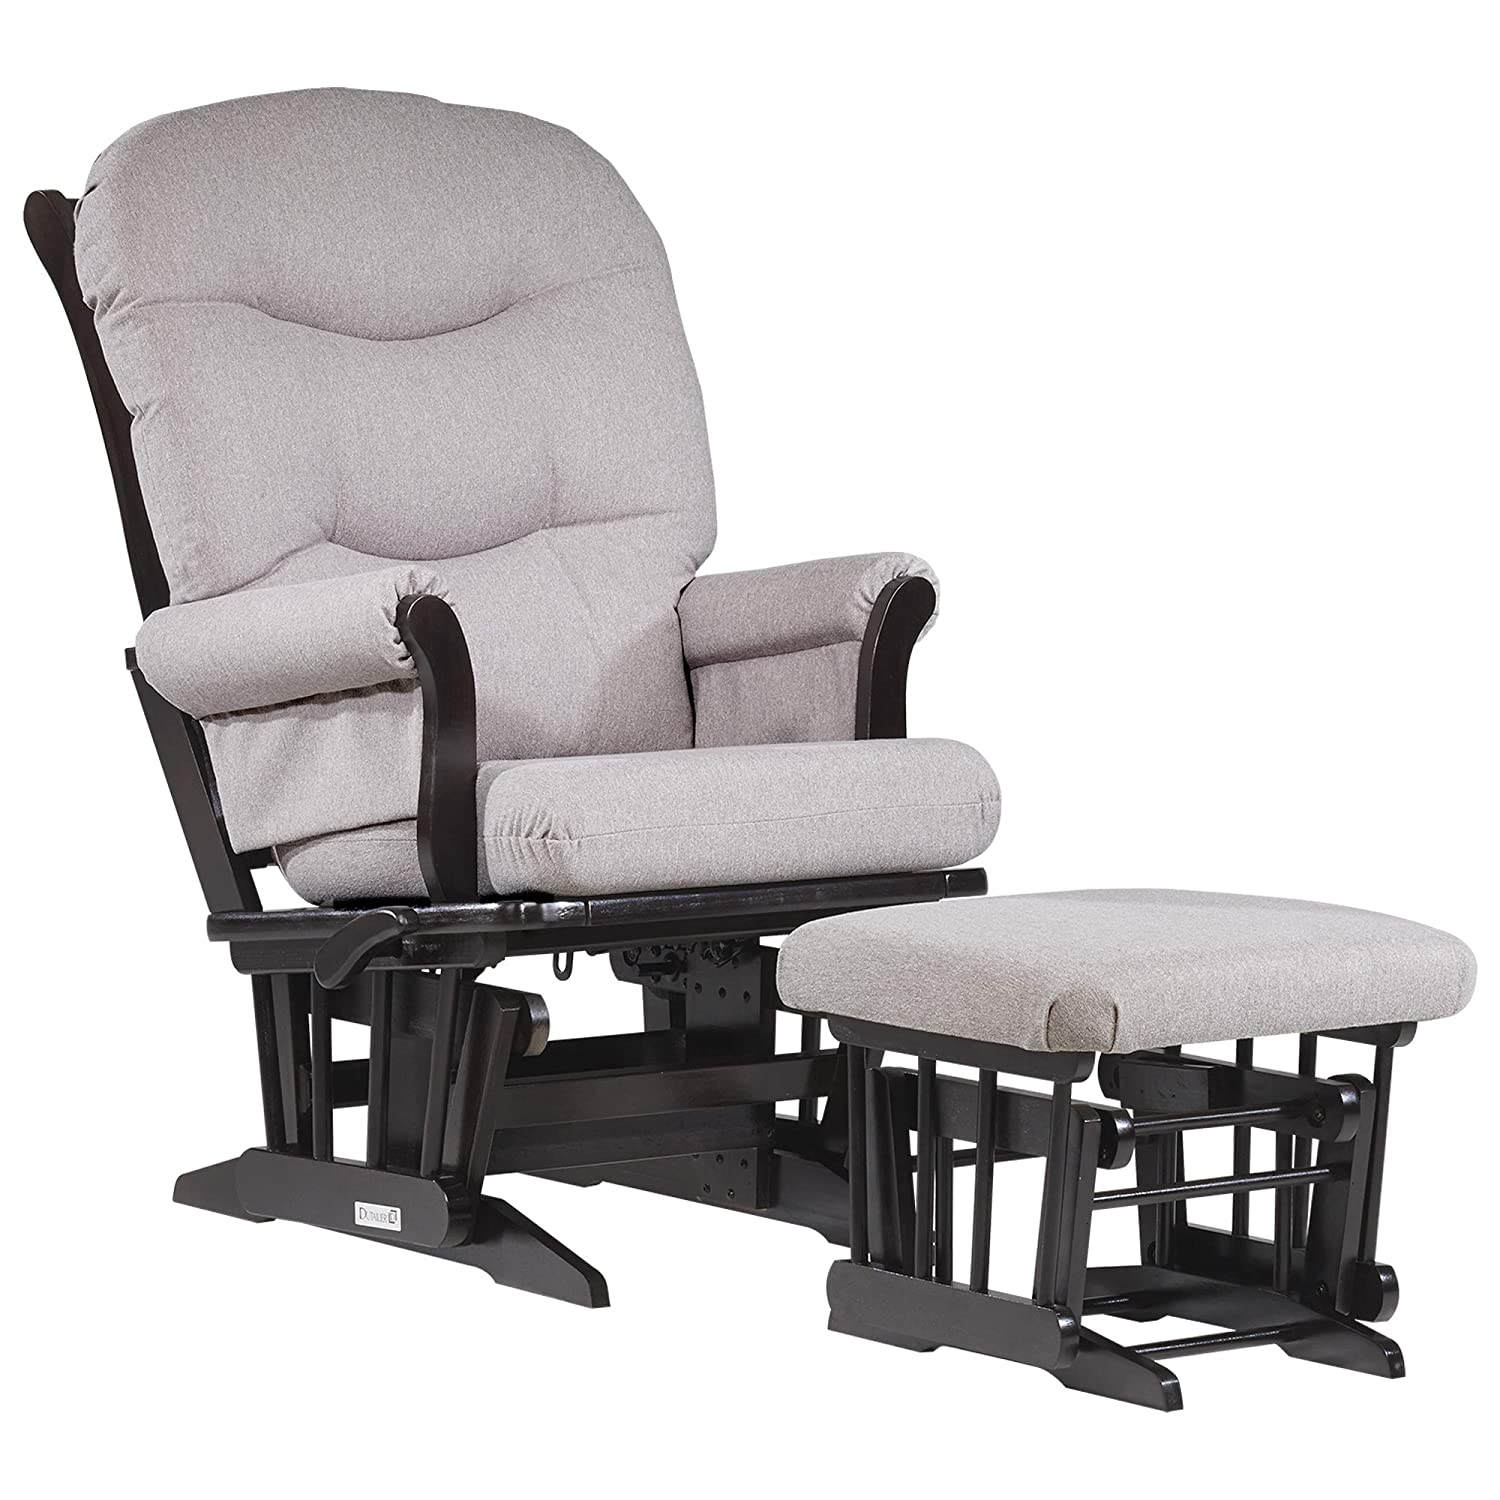 Amazon Com Dutailier Sleigh 0369 Glider Multiposition Lock Recline With Ottoman Included Baby